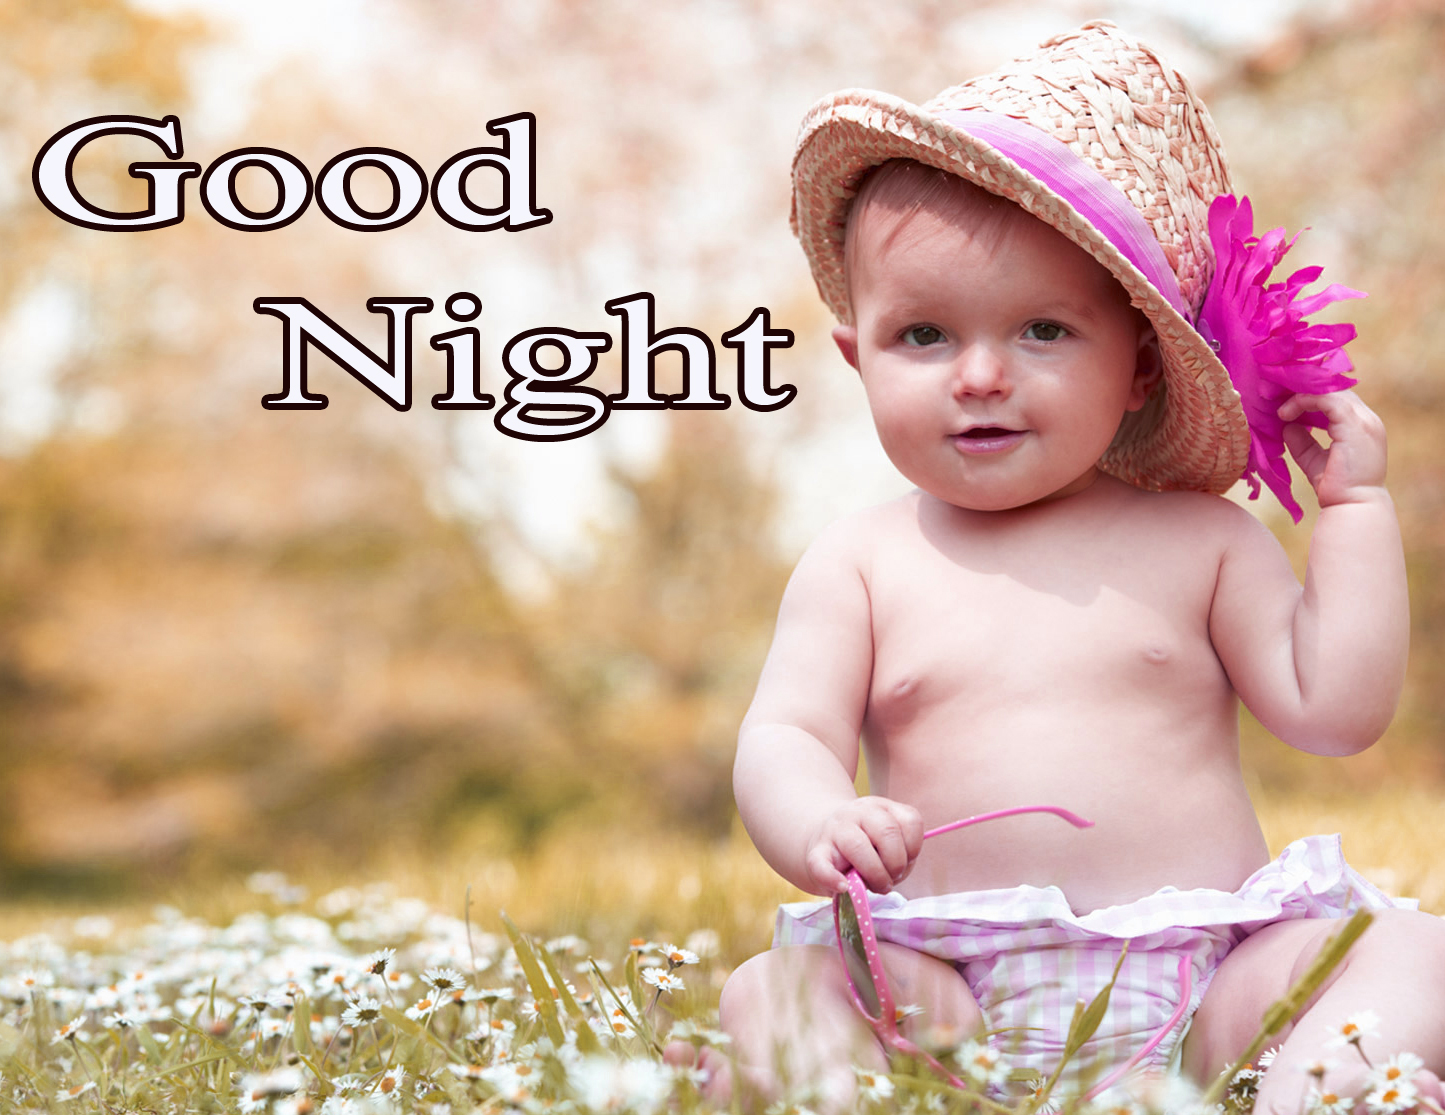 GOOD NIGHT IMAGES WITH CUTE BABY BOYS & GIRLS WALLPAPER PICS FOR FACEBOOK